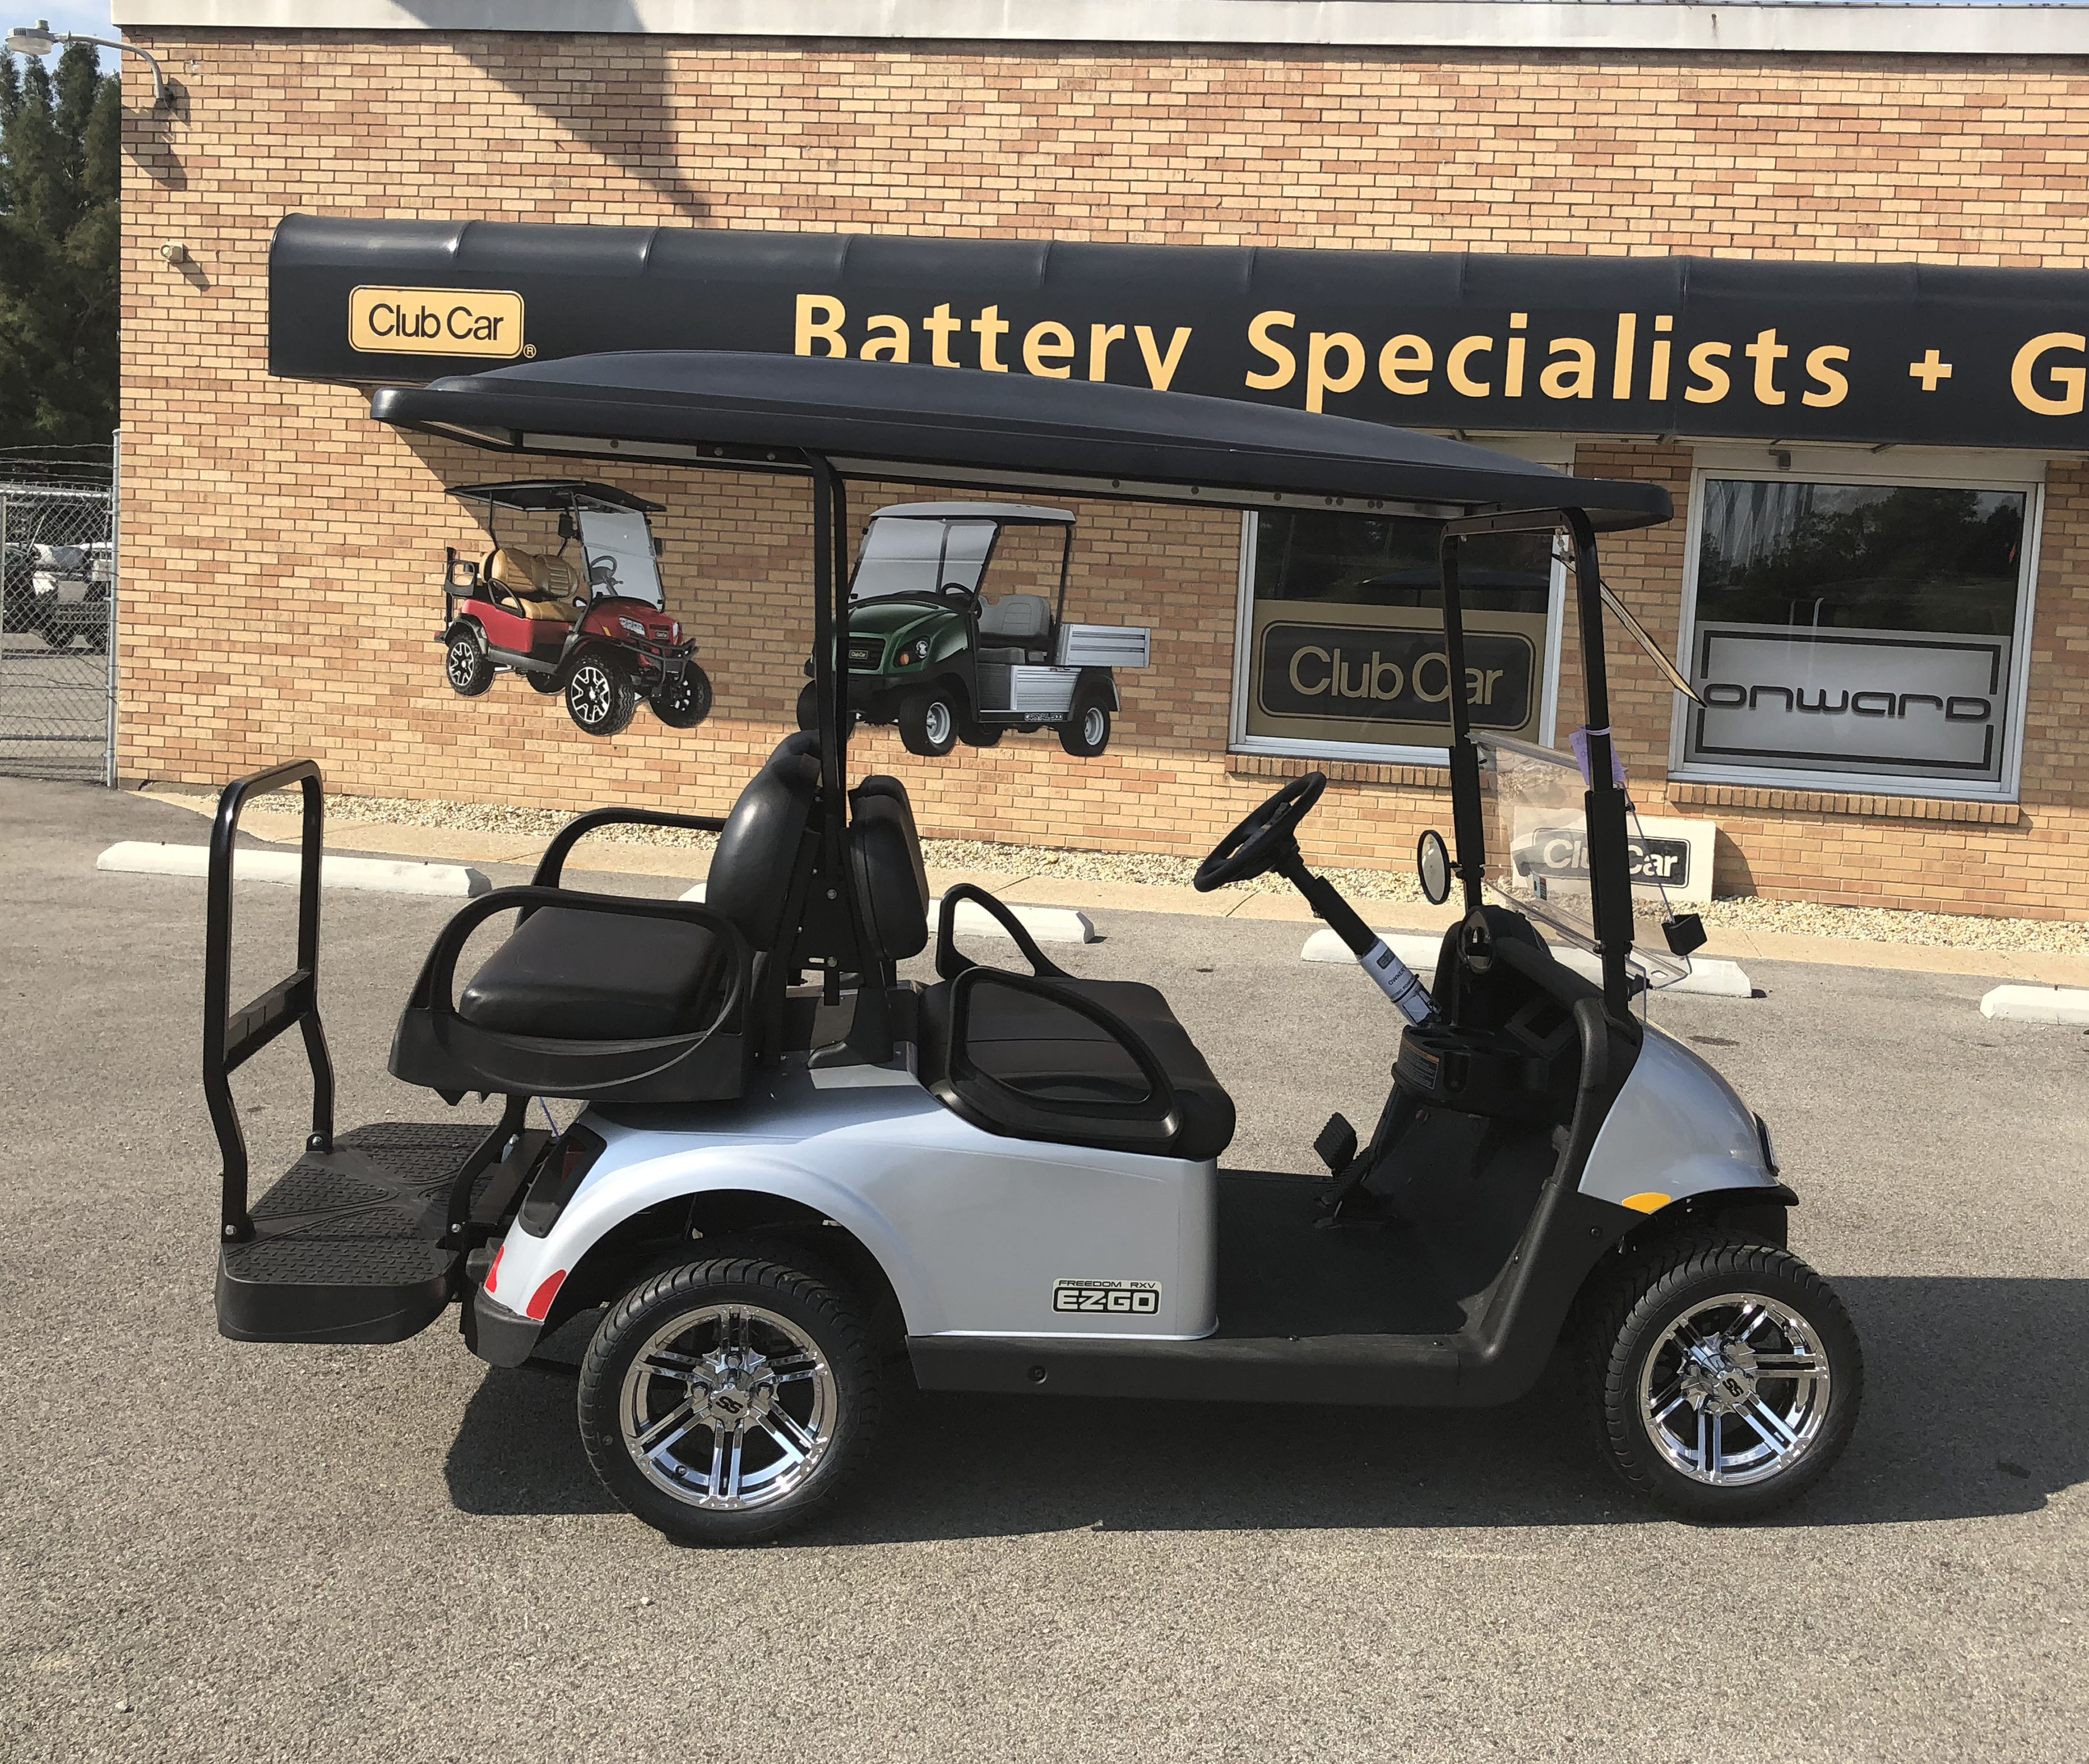 2018 Platinum EZGO Electric Golf Cart $7869